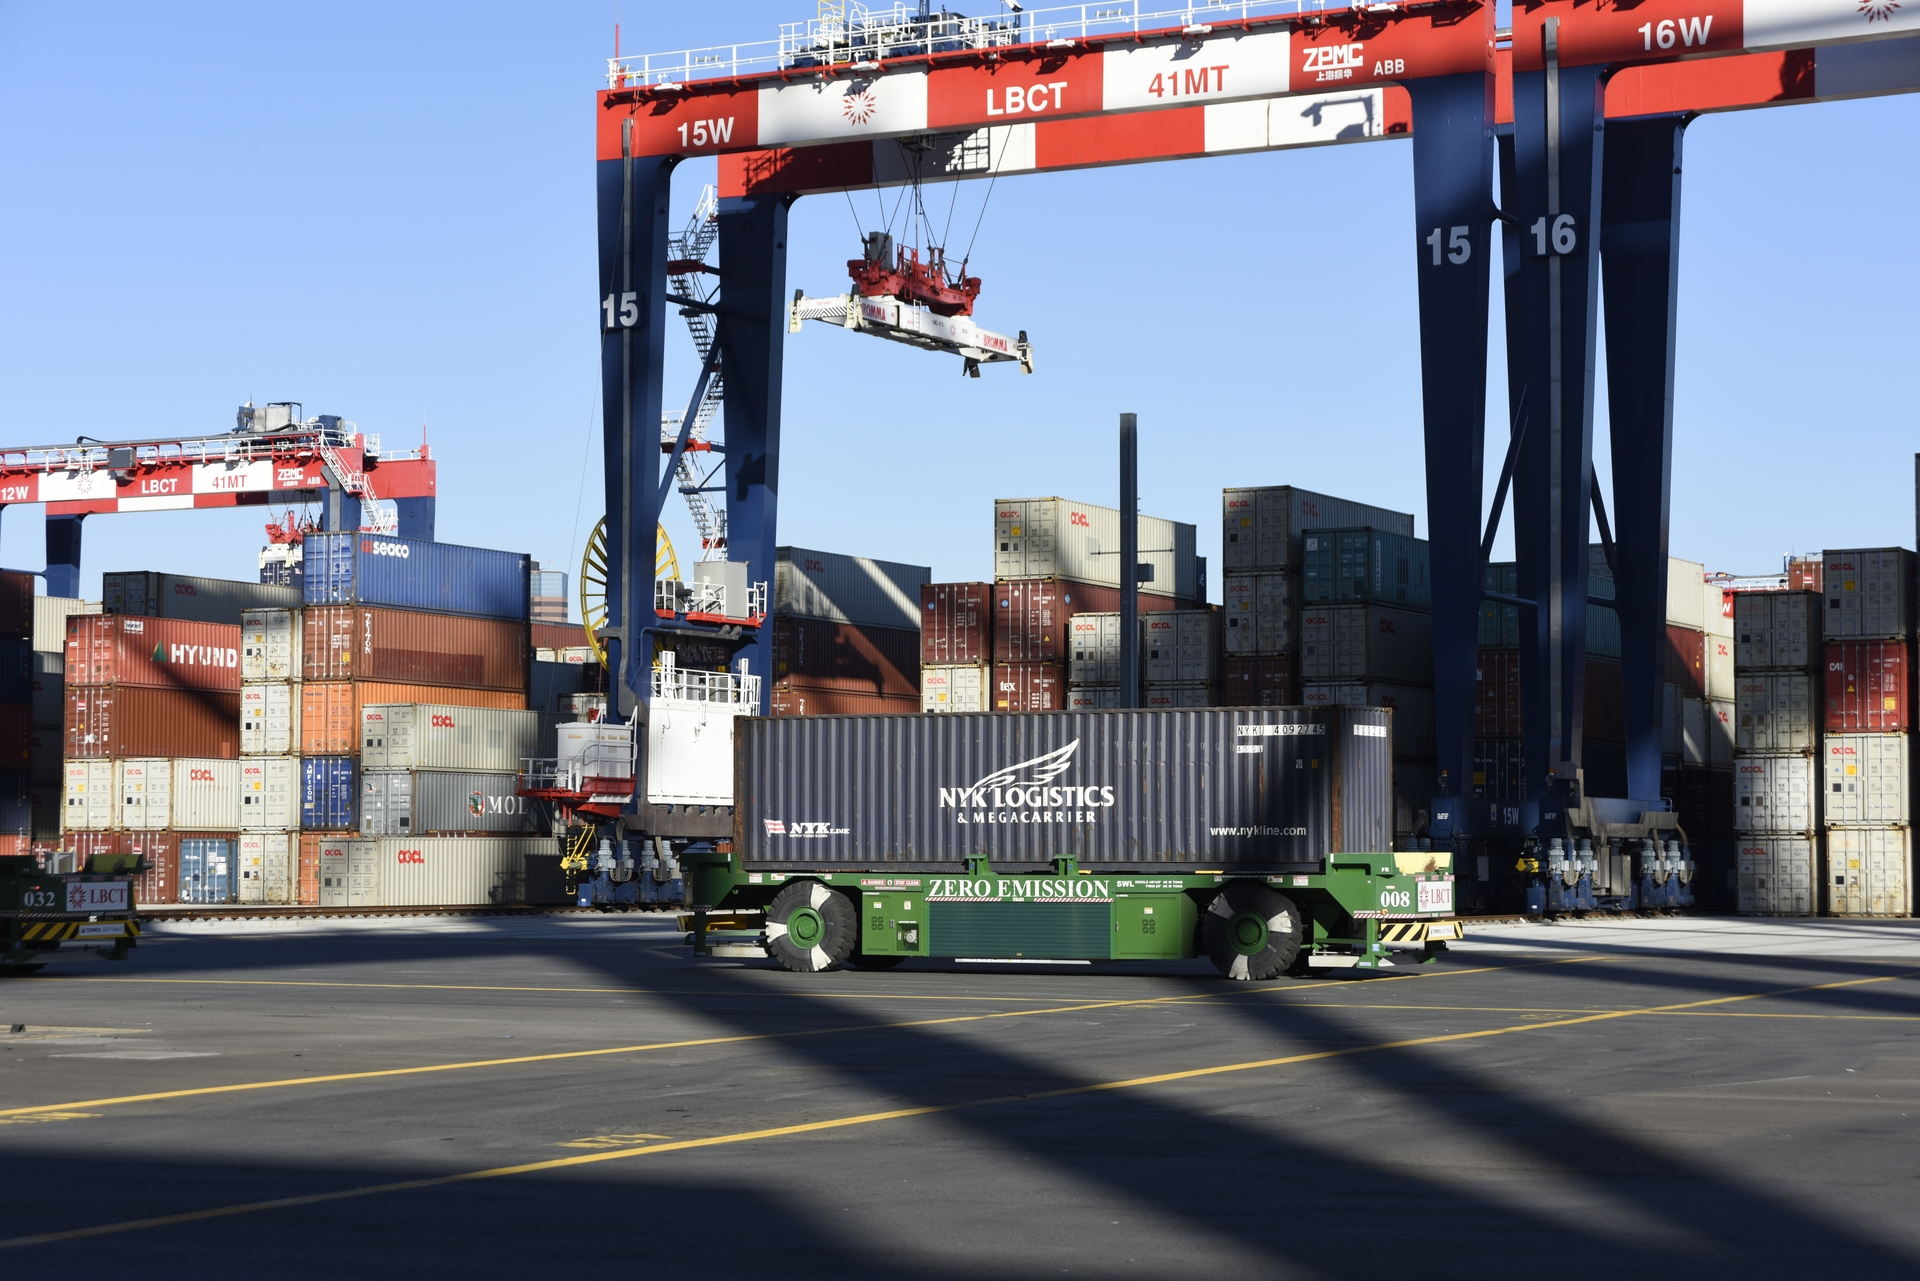 SCE undertook a four-year effort to install the needed electrical infrastructure that now serves as the backbone of the fully electrified, emission-free Long Beach Container Terminal.